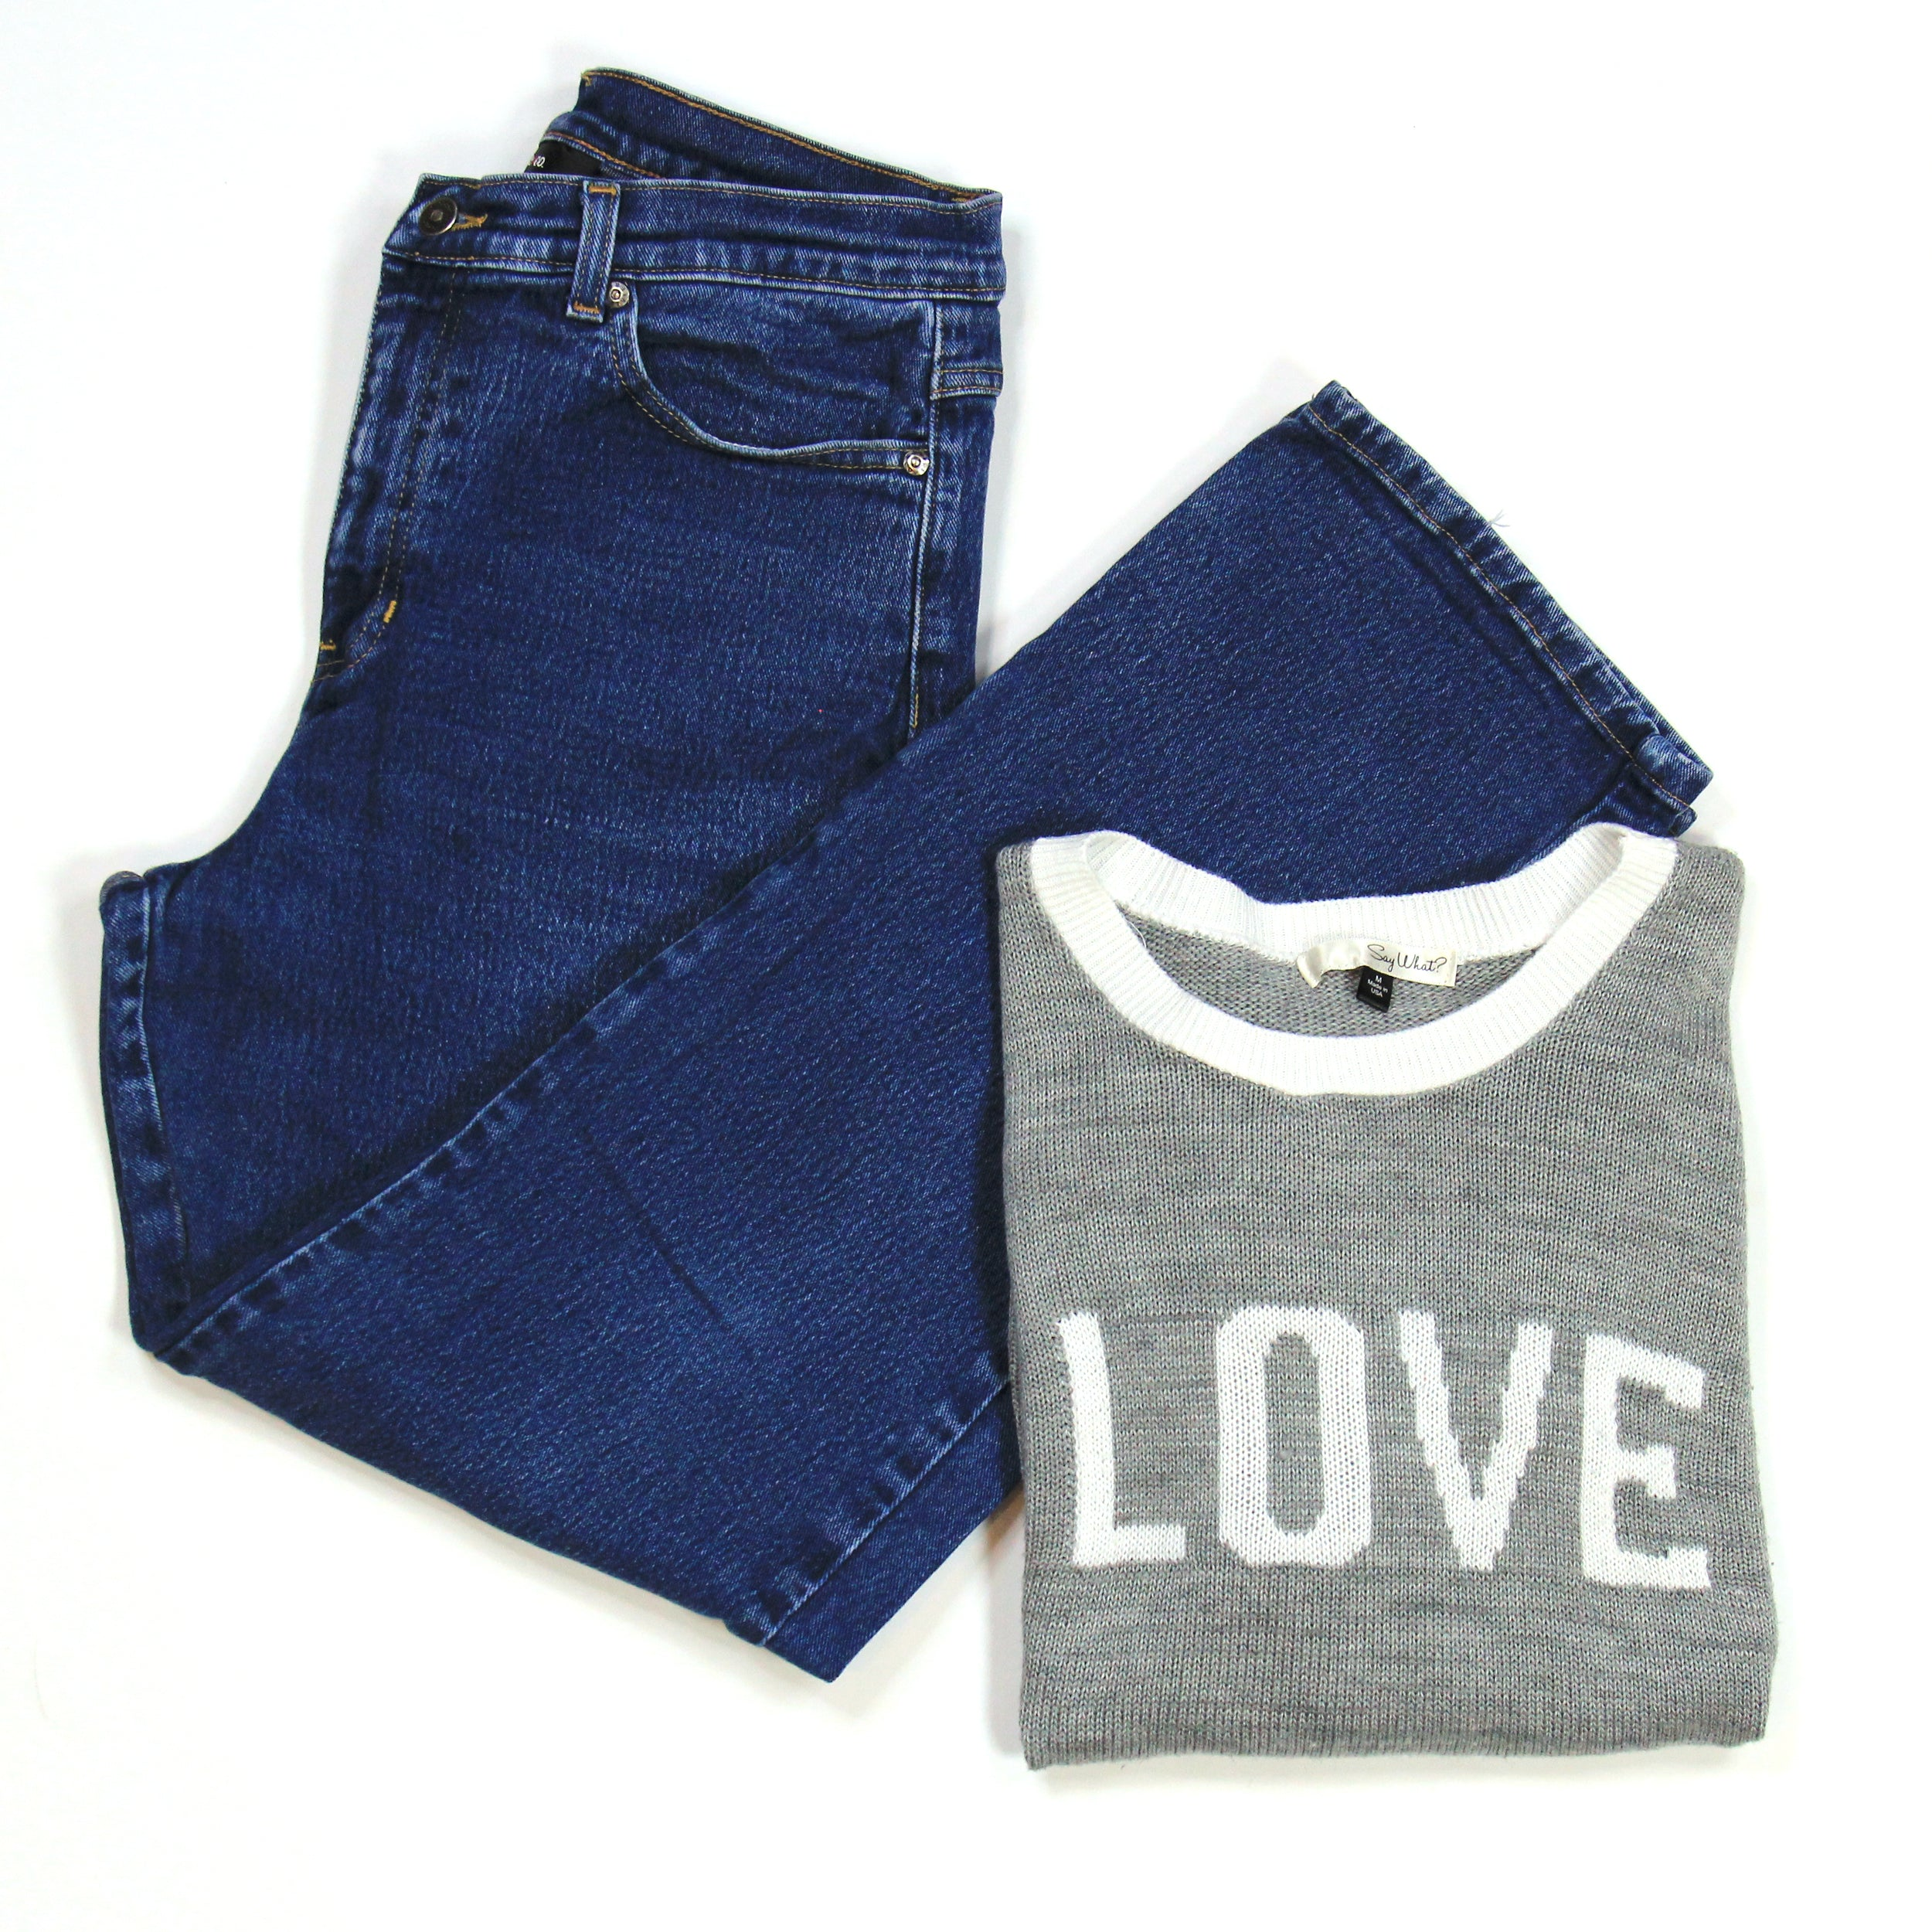 Say What? 'LOVE' Grey Sweater Size M